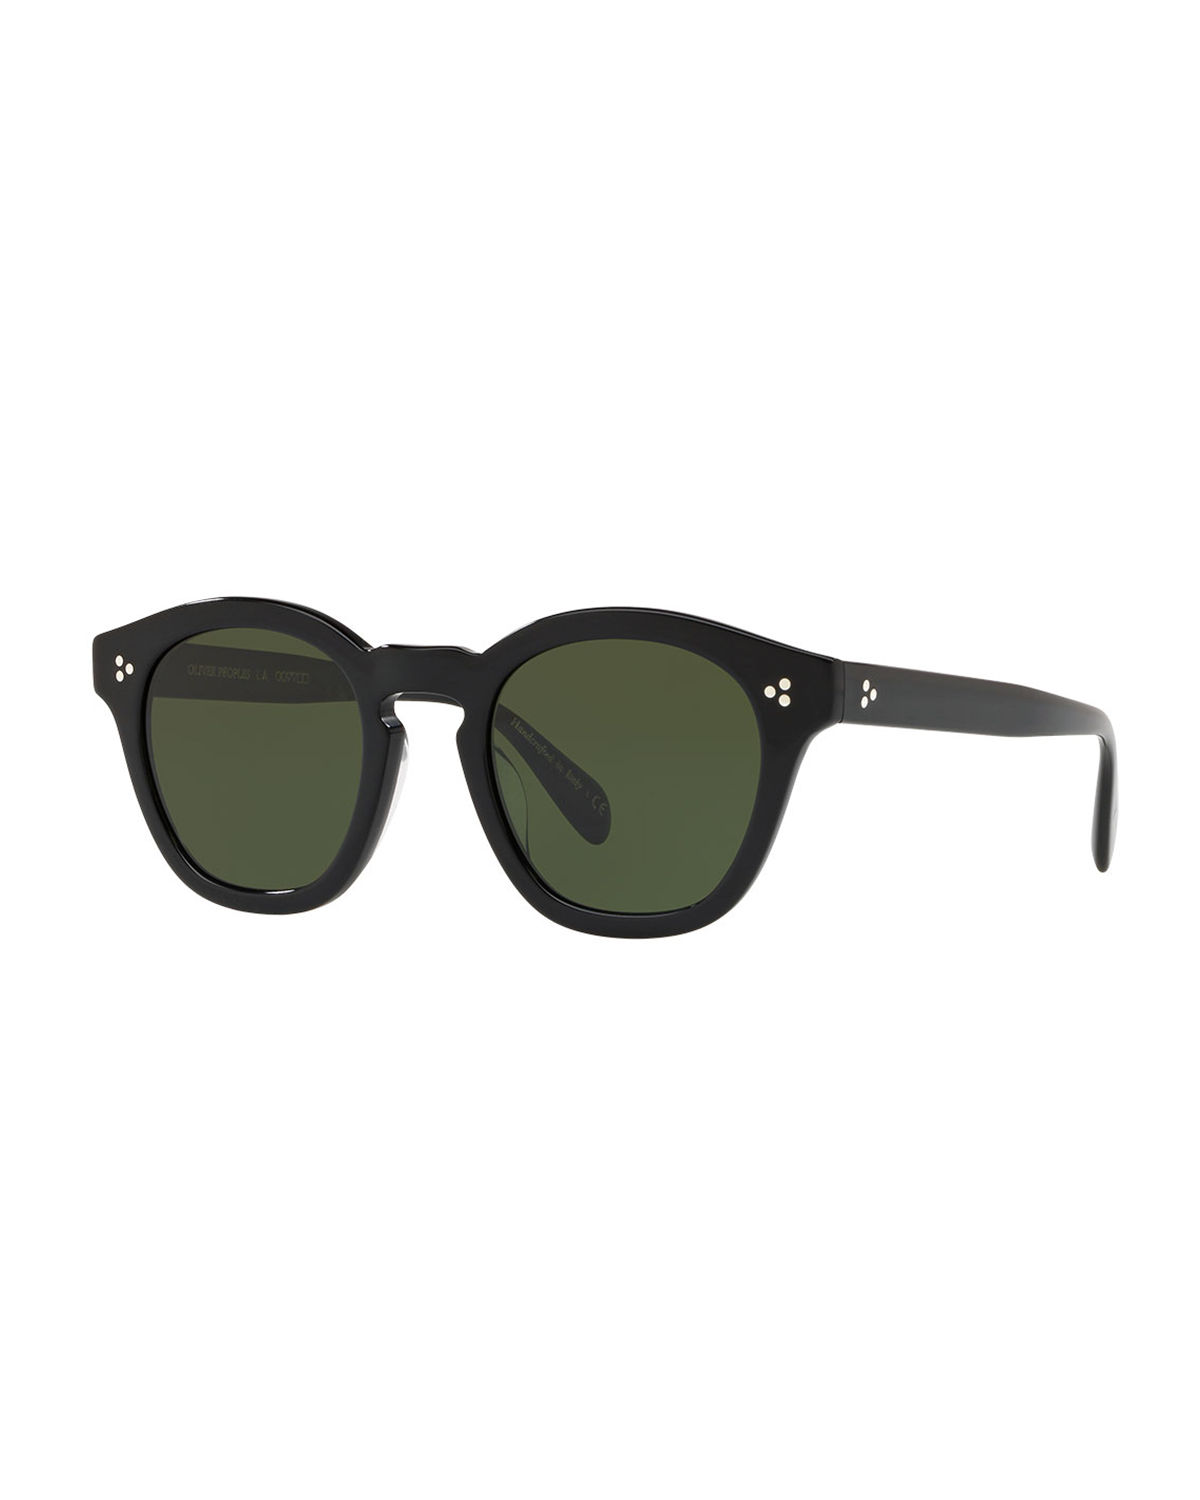 39ef23baf93 Oliver Peoples Boudreau L.A. Mirrored Round Acetate Sunglasses ...